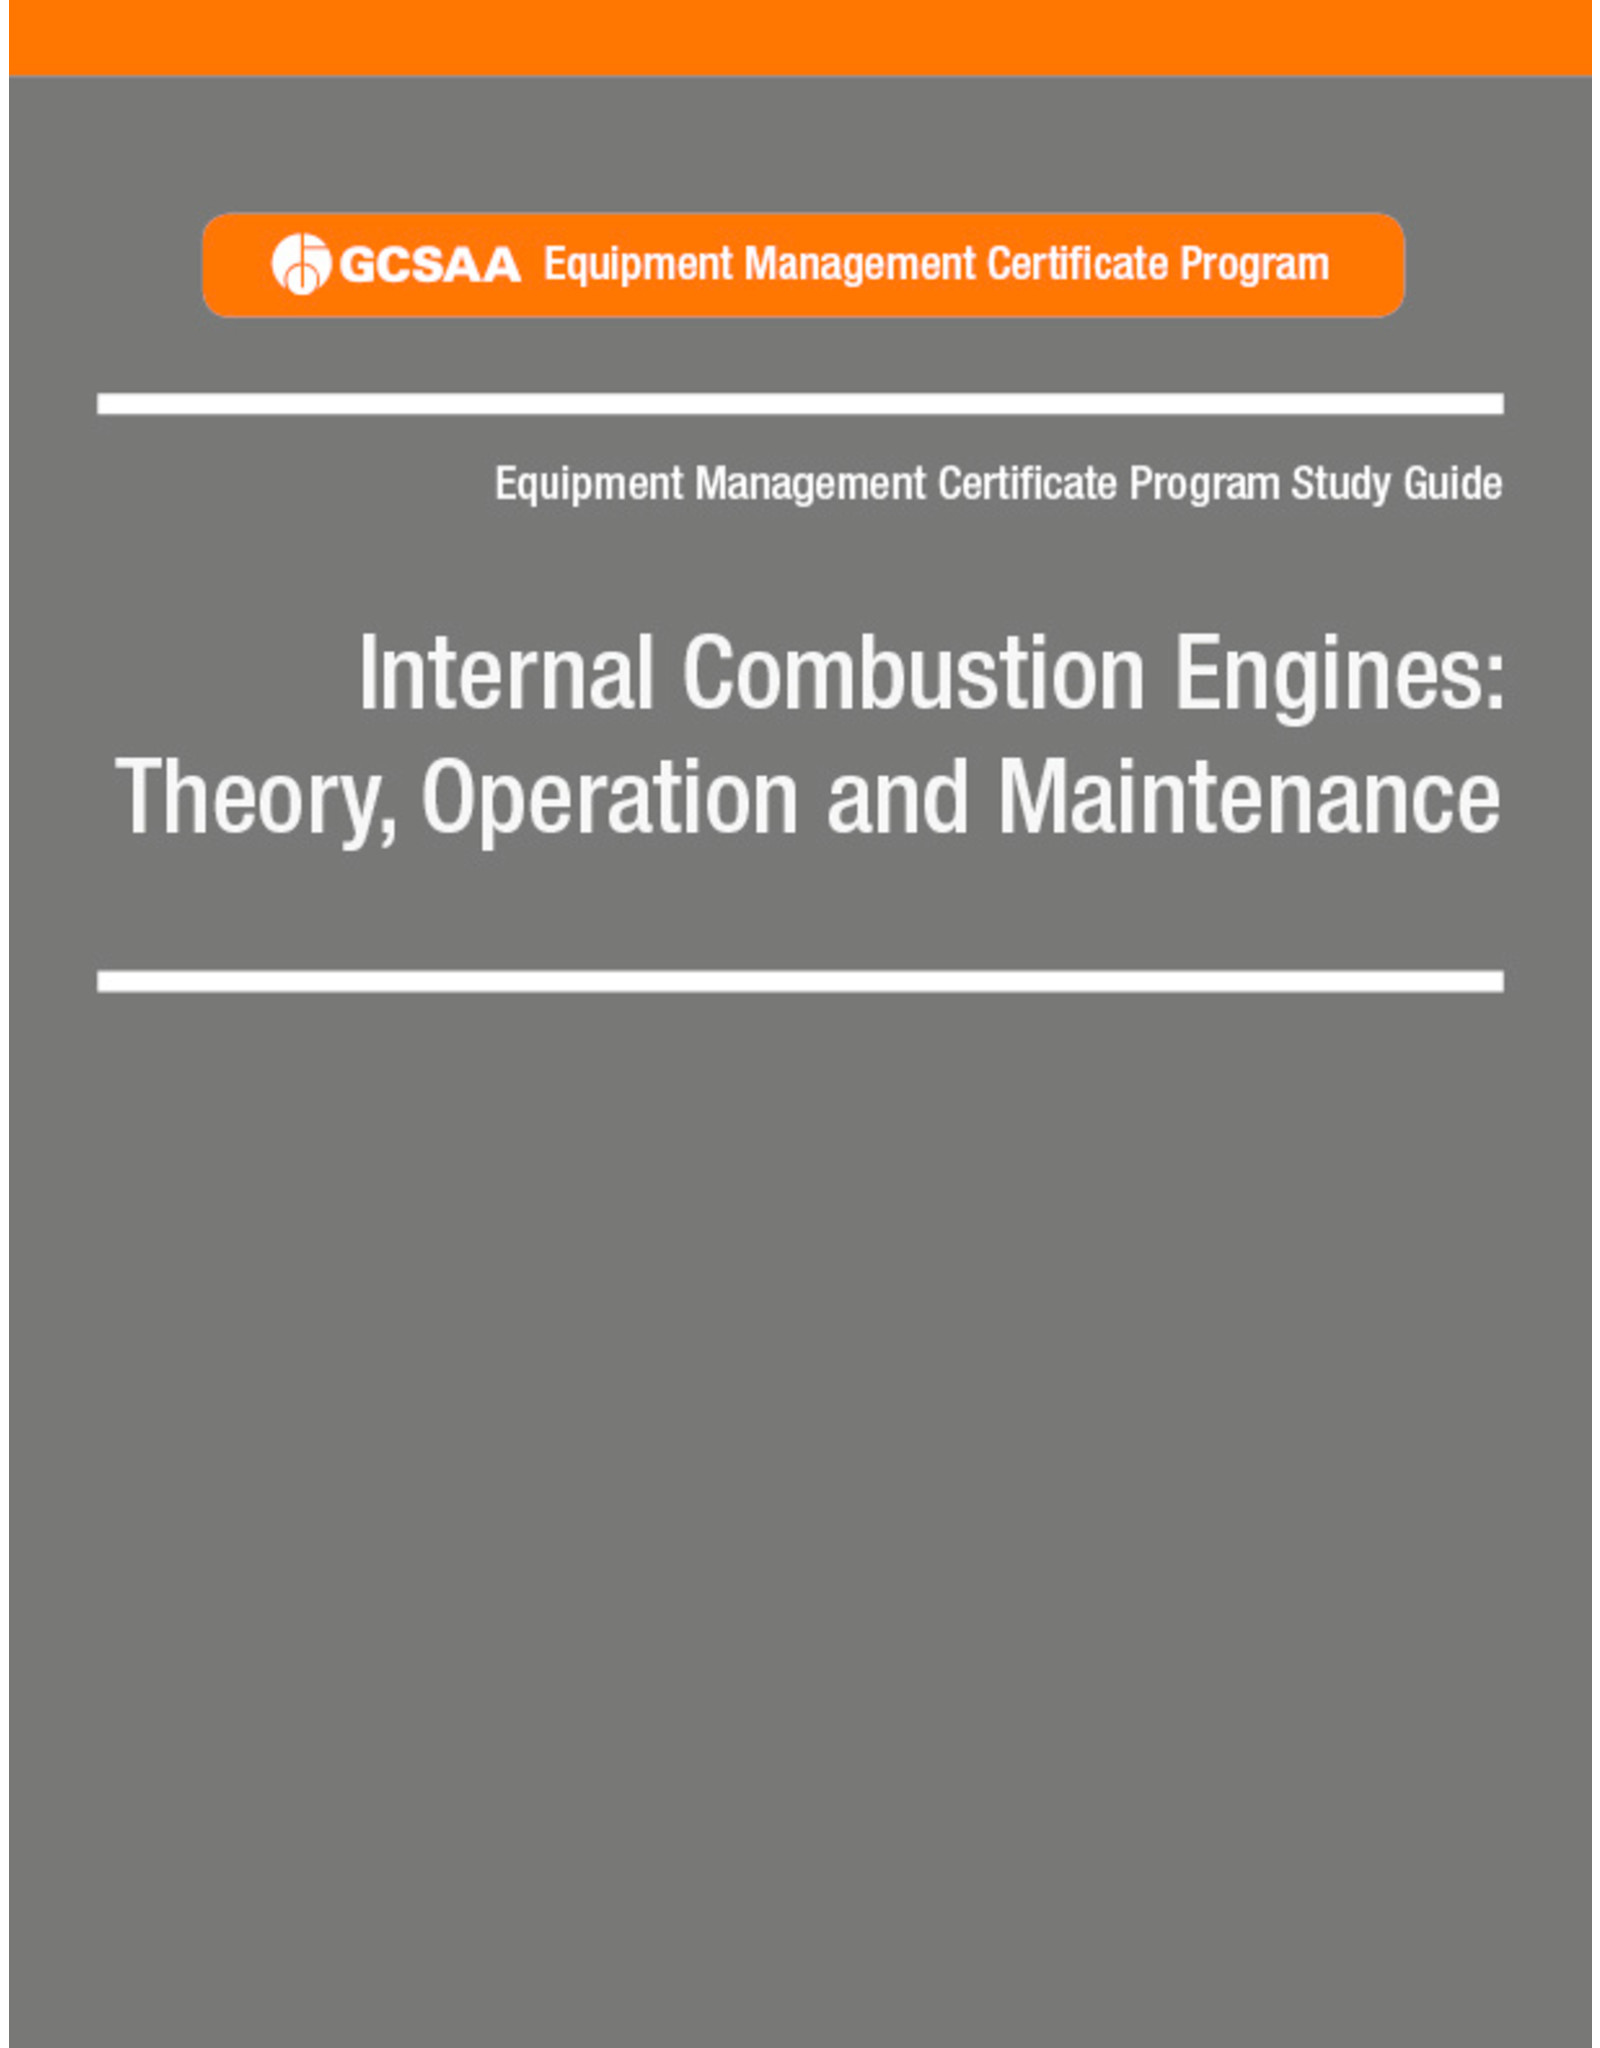 Internal Combustion Engines: Theory, Operation and Maintenance